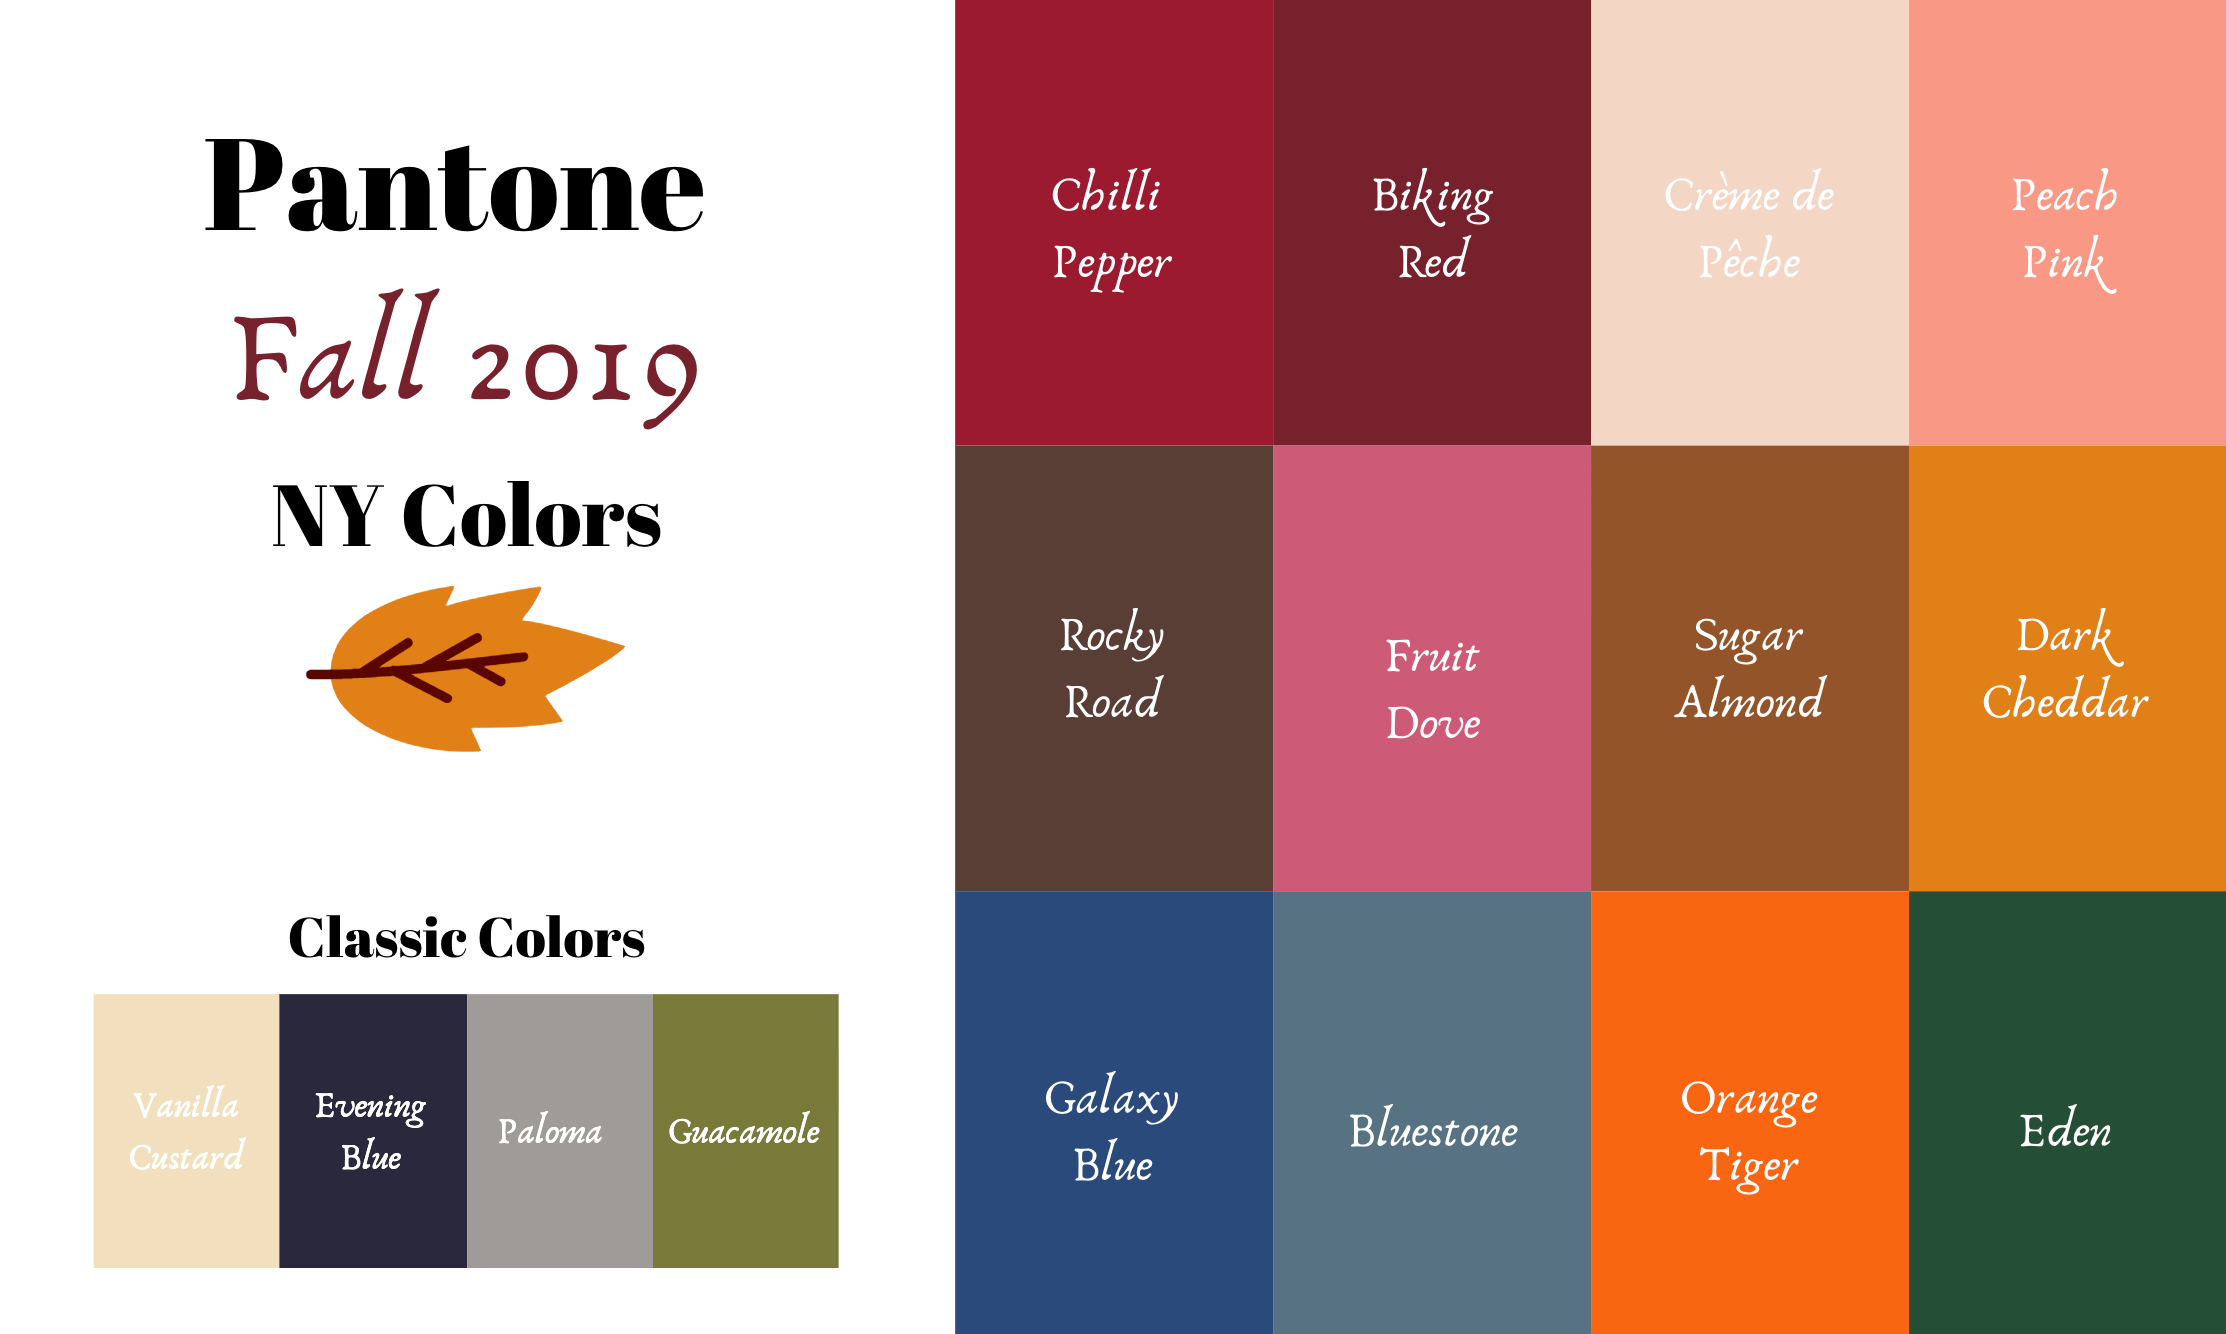 Pantone 2019 - Autumn/Winter